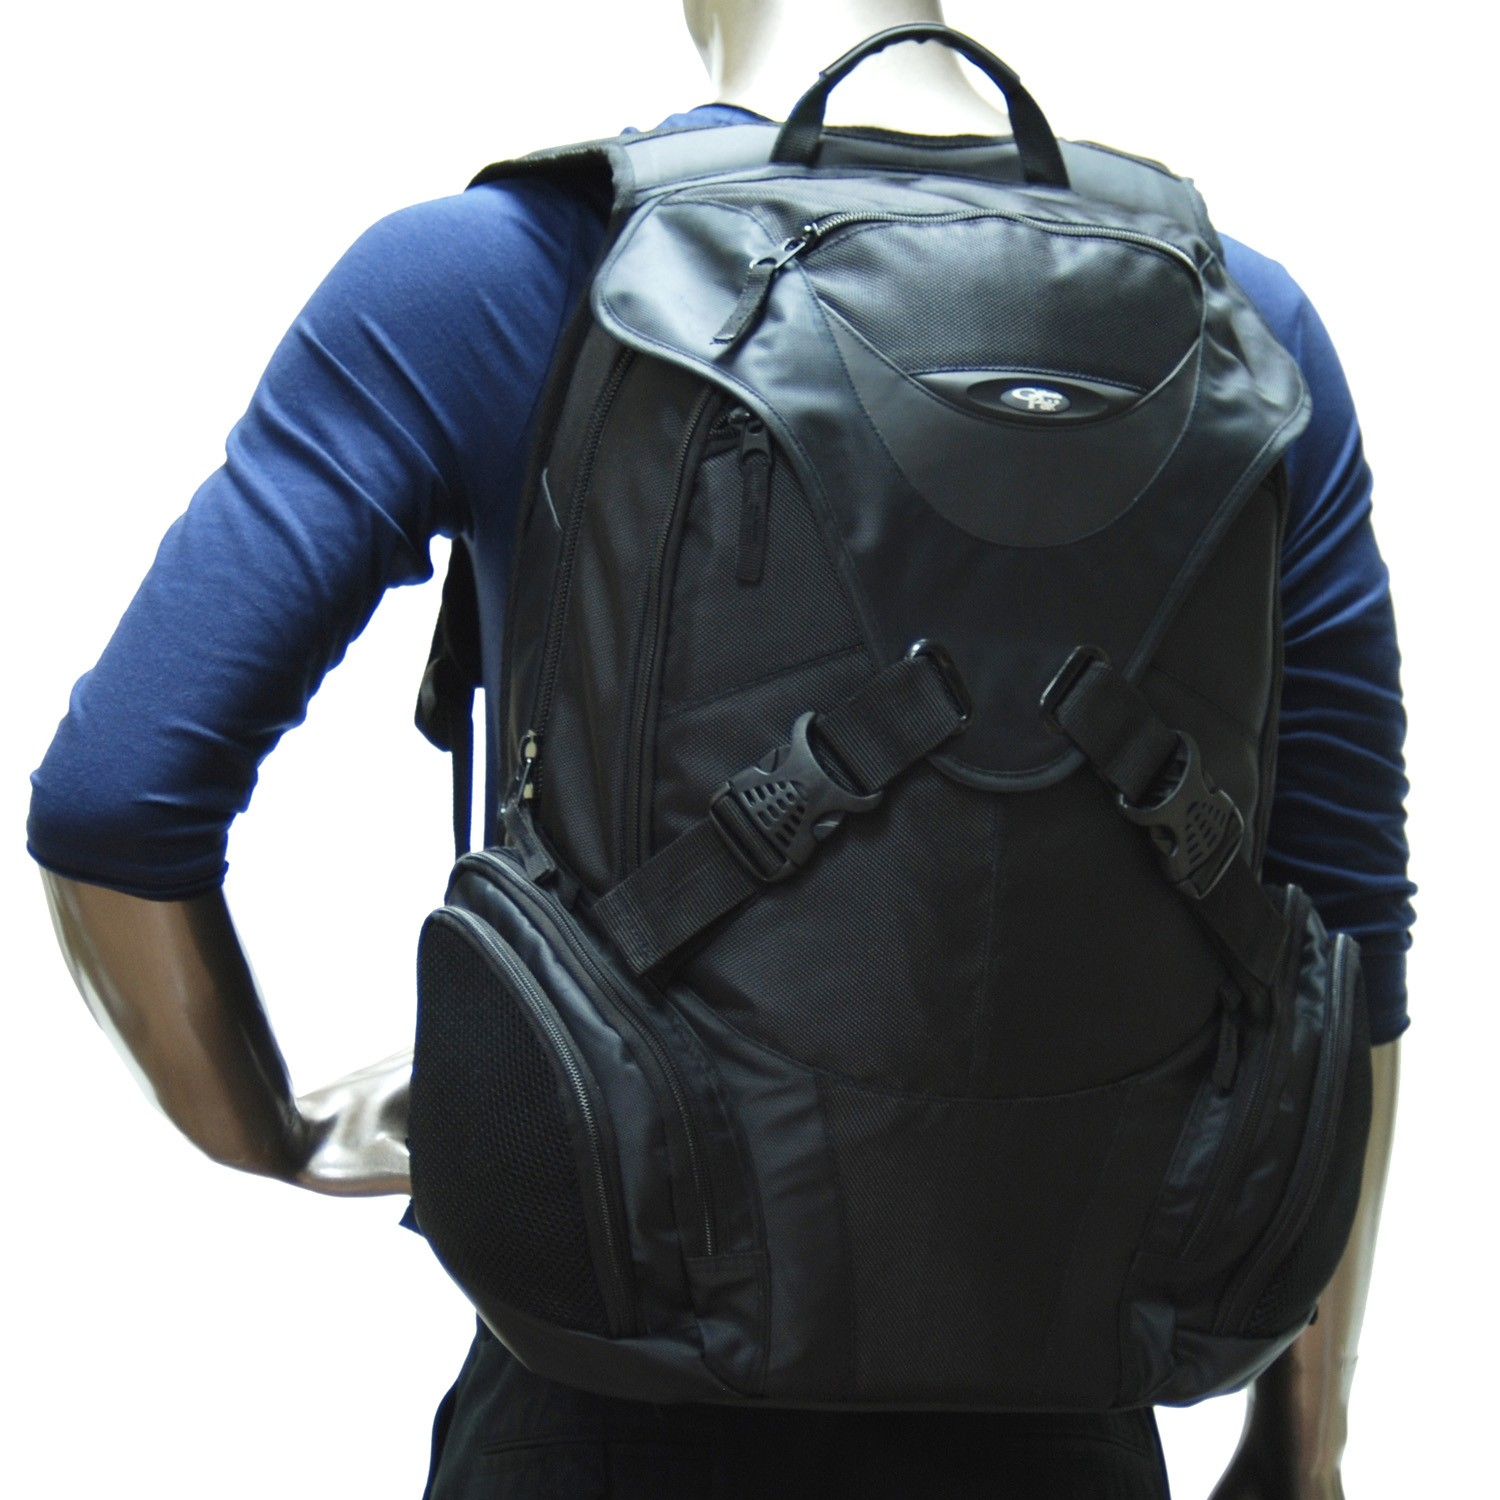 18 Laptop Backpack HMbP097V